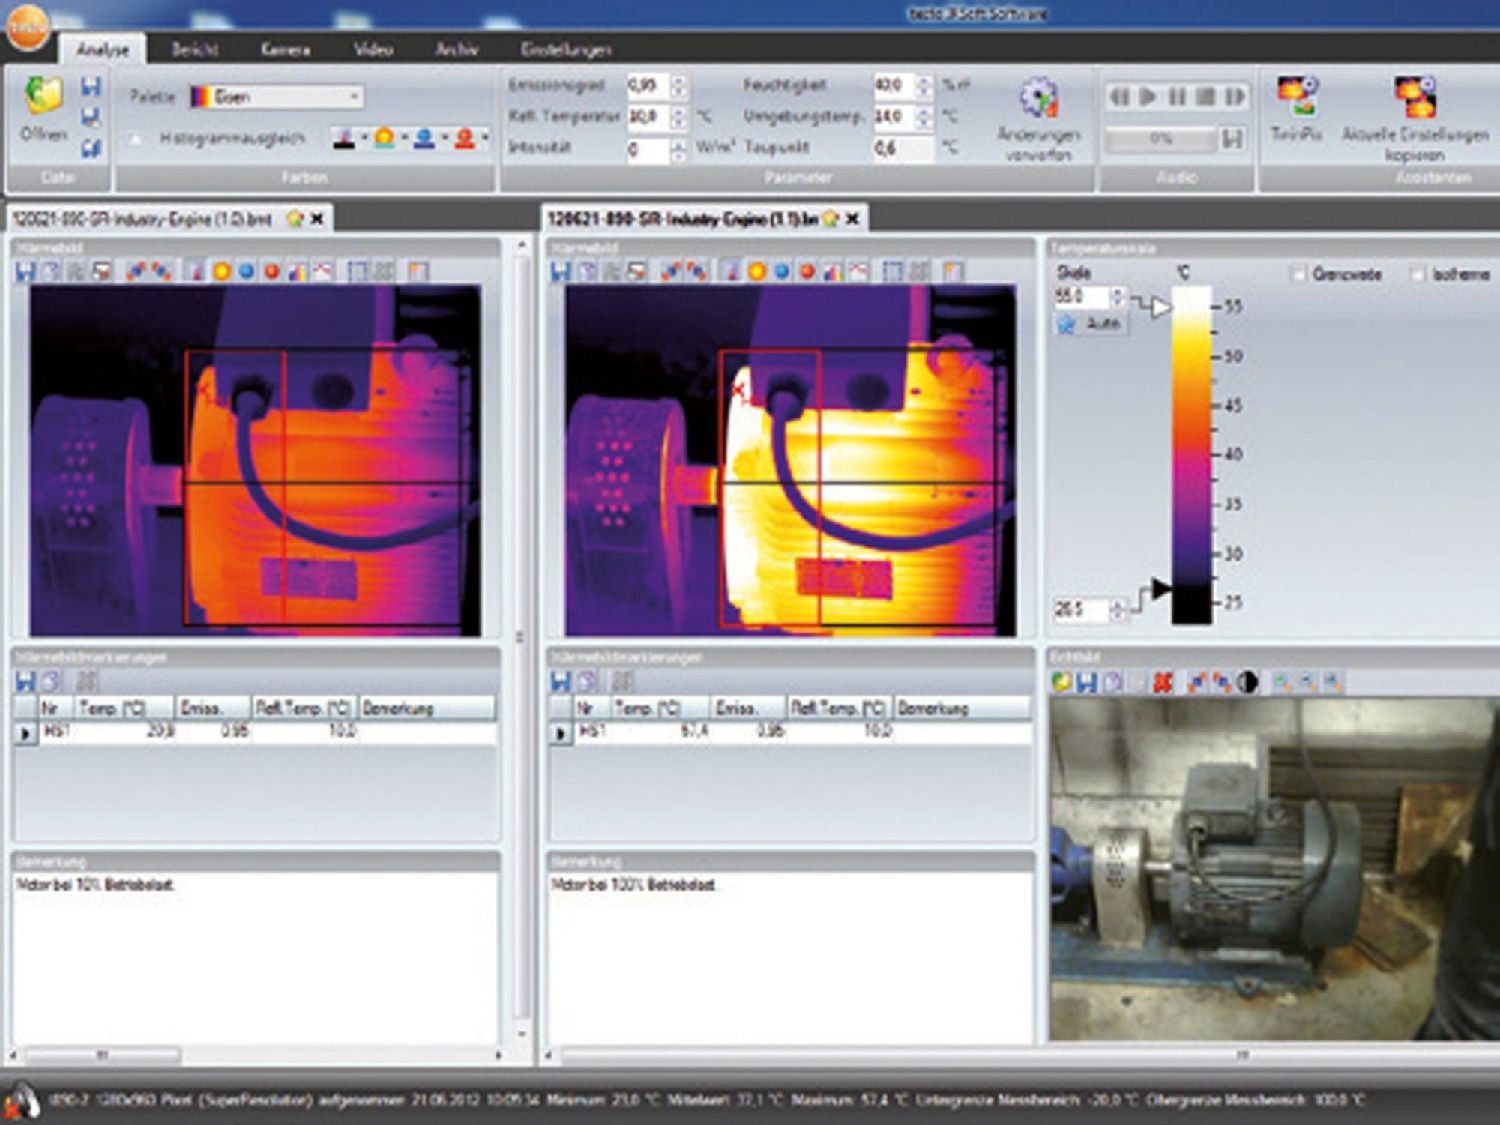 Software thermal imager